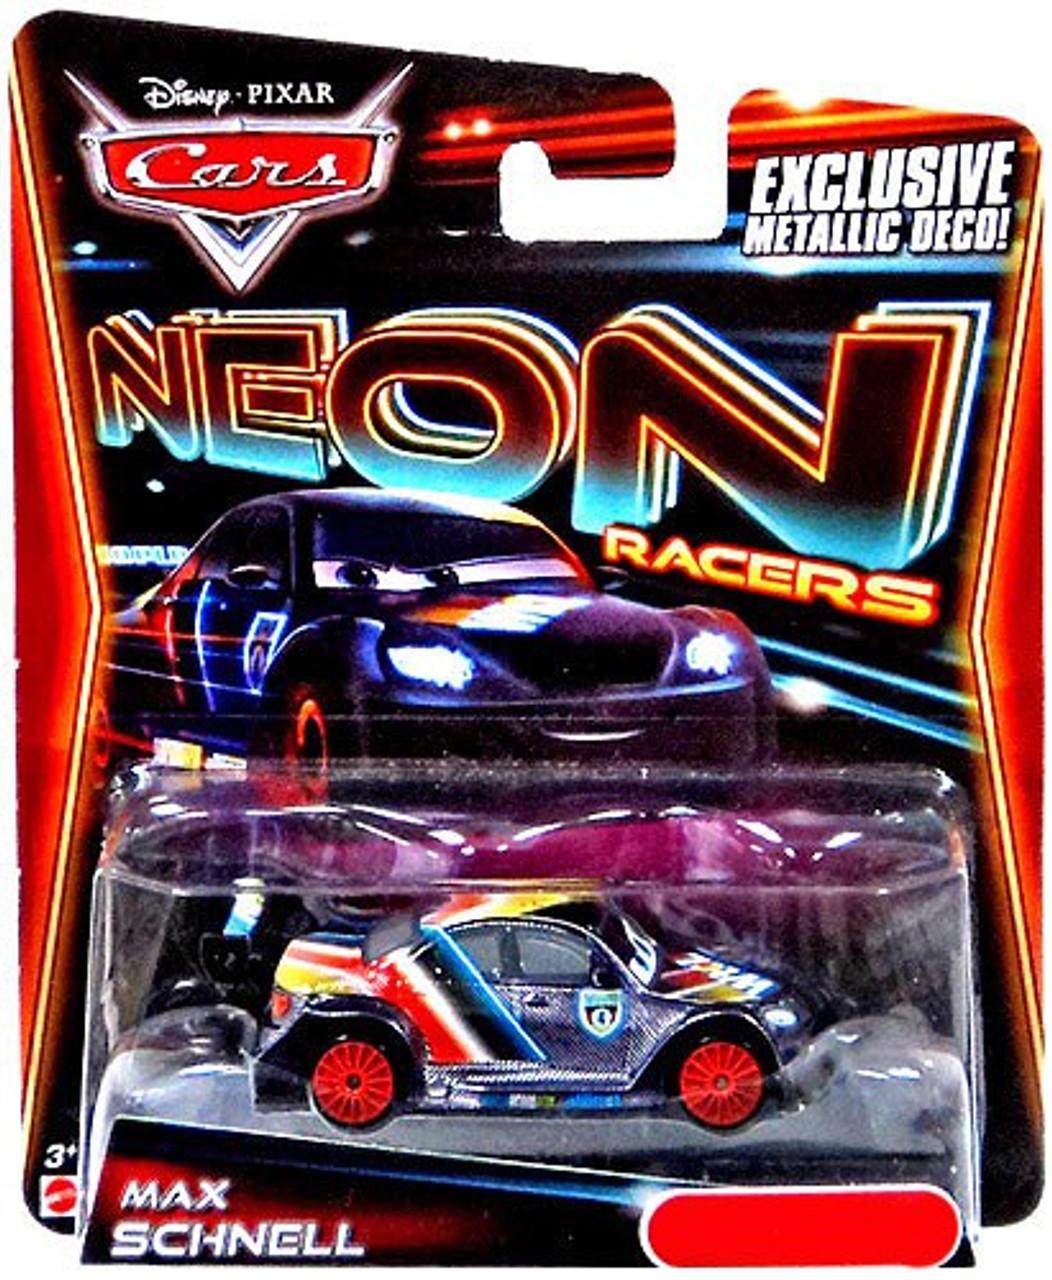 Disney Pixar Cars Neon Racers Max Schnell Exclusive 155